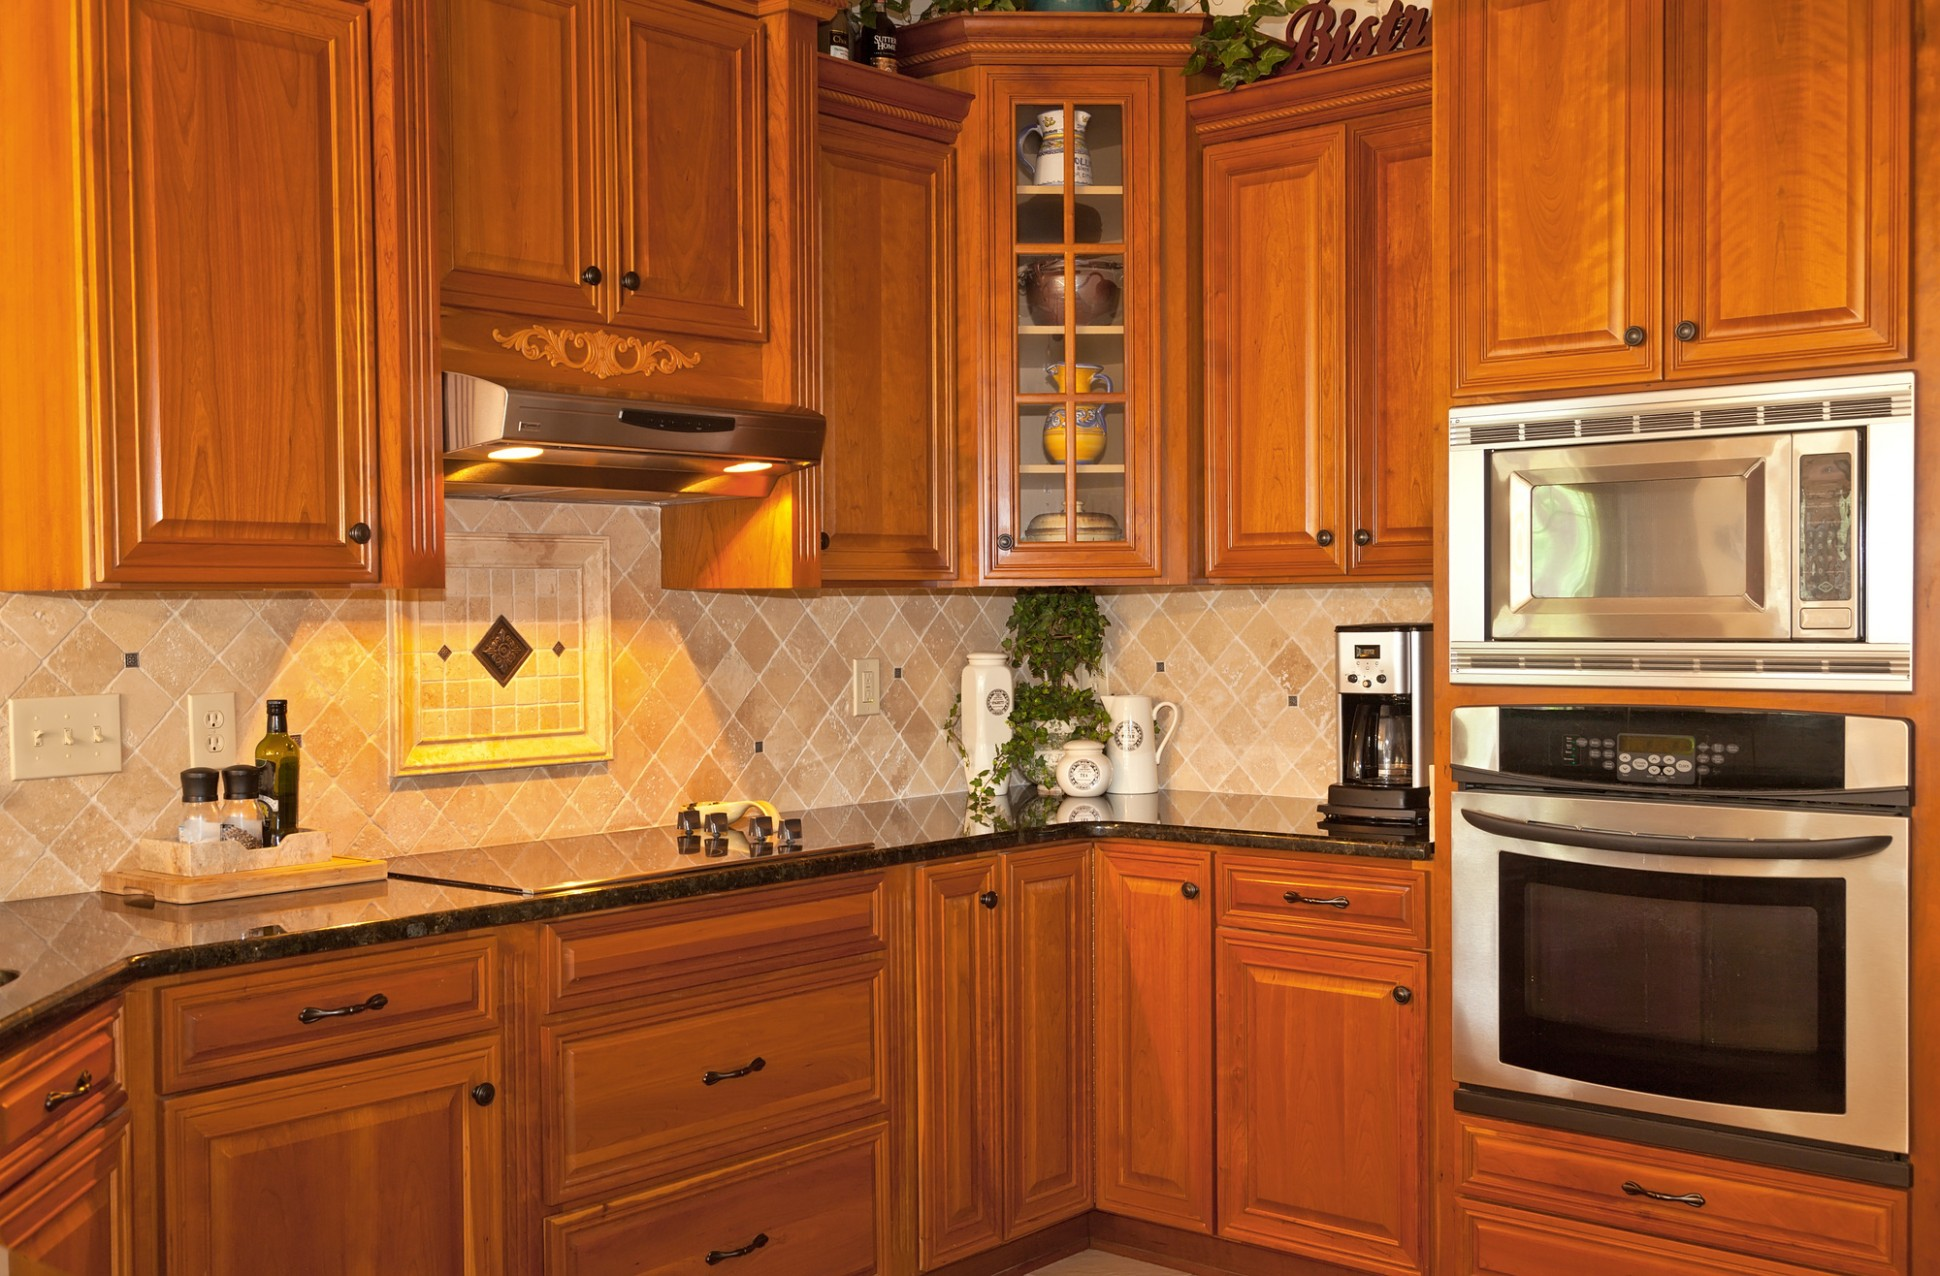 Kitchen Cabinet Dimensions: Your Guide to the Standard Sizes - Kitchen Cabinet Depth Options